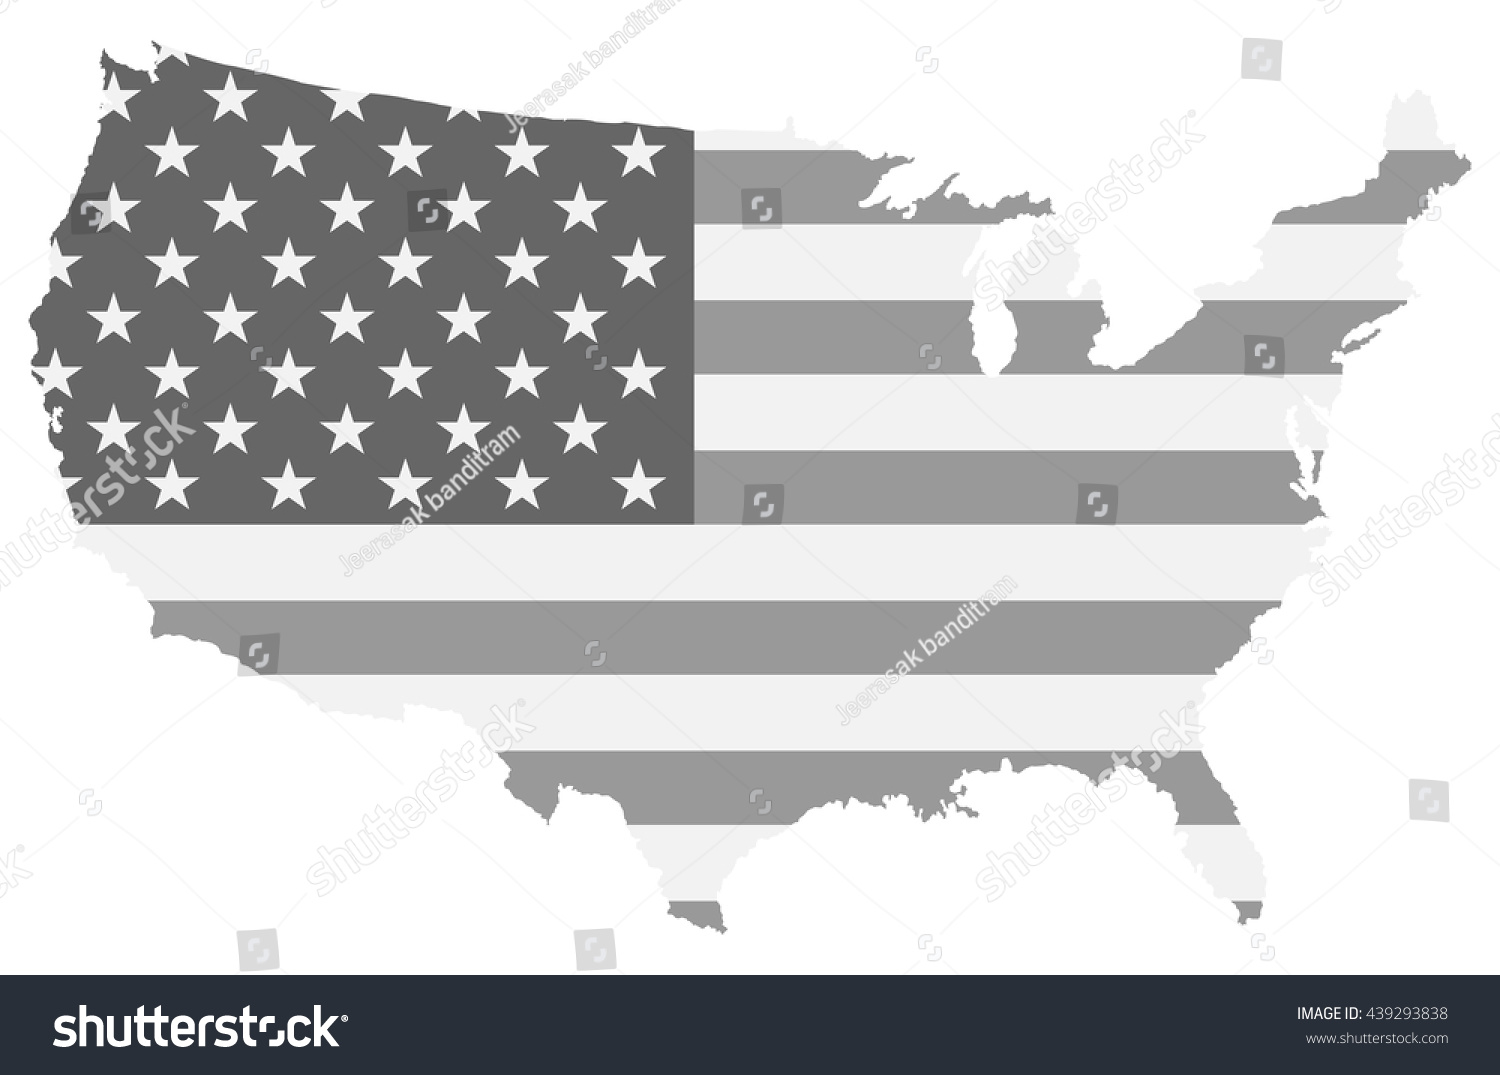 Physical Map Of The United States Black And White US Outline Wall - Usa map black